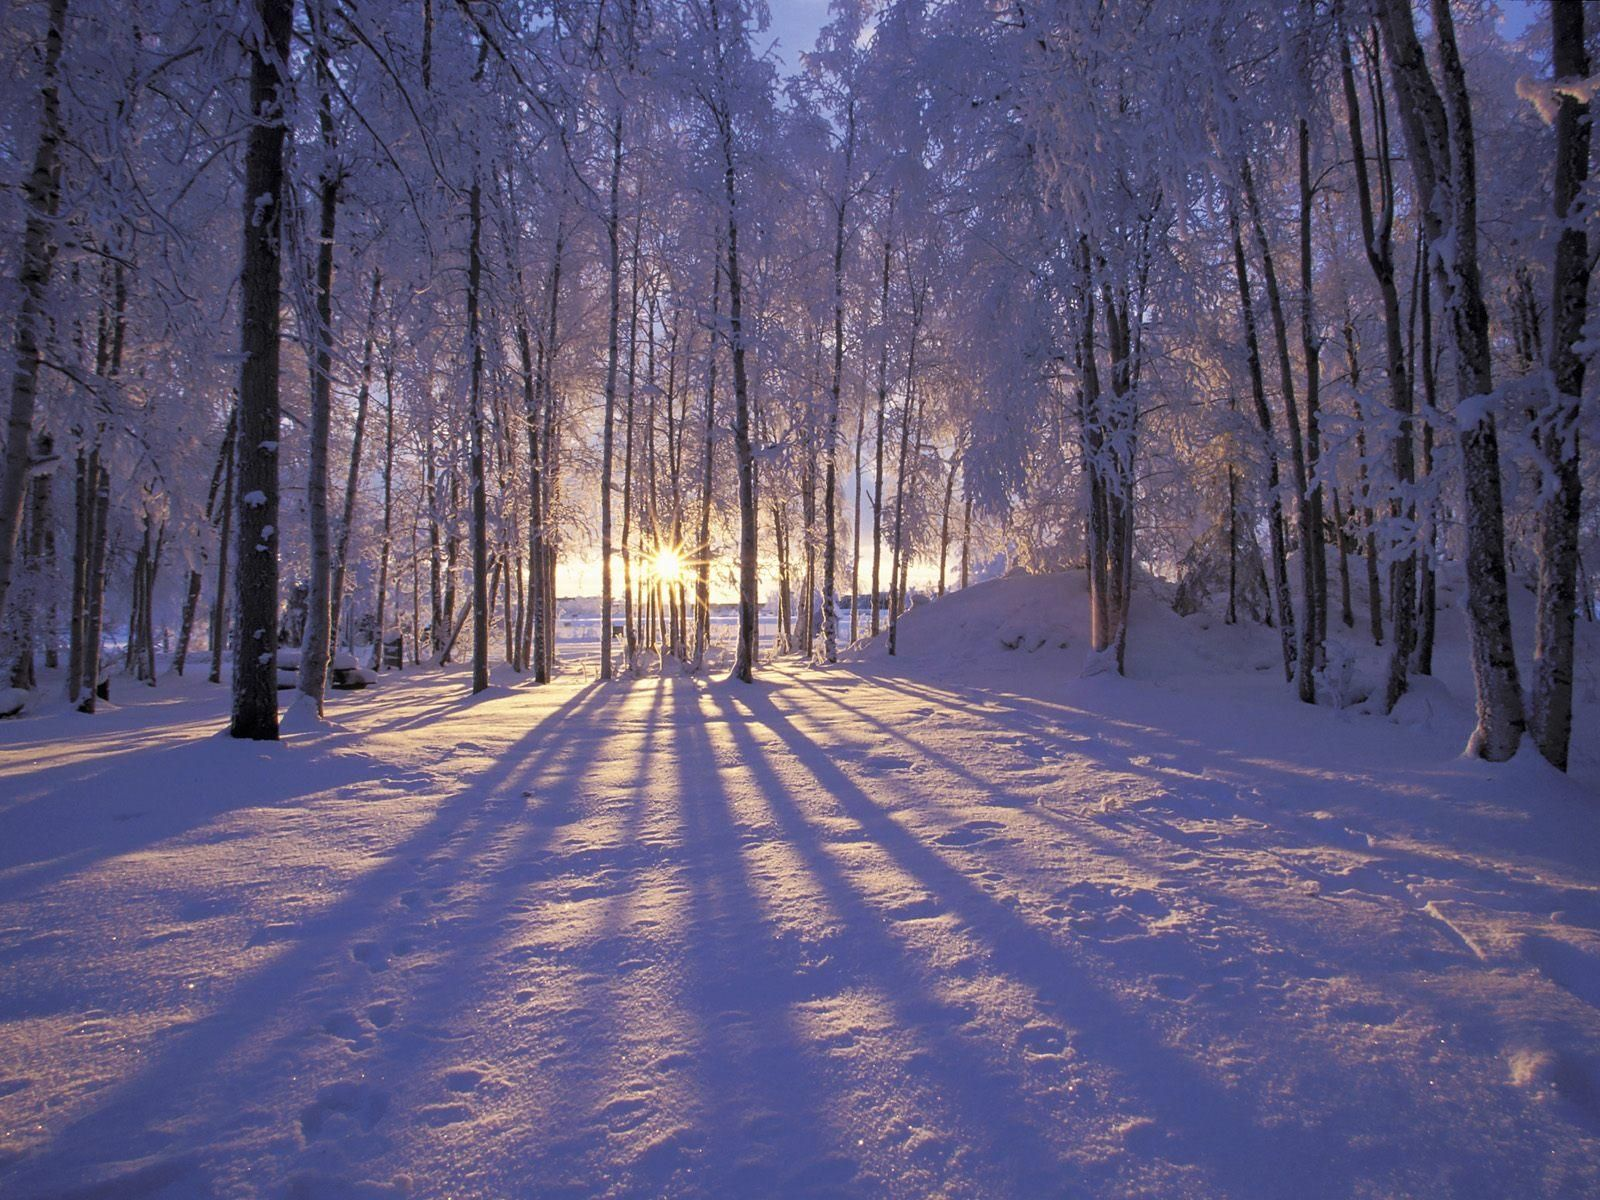 Winter wallpapers hd desktop backgrounds images and pictures winter landscape voltagebd Choice Image